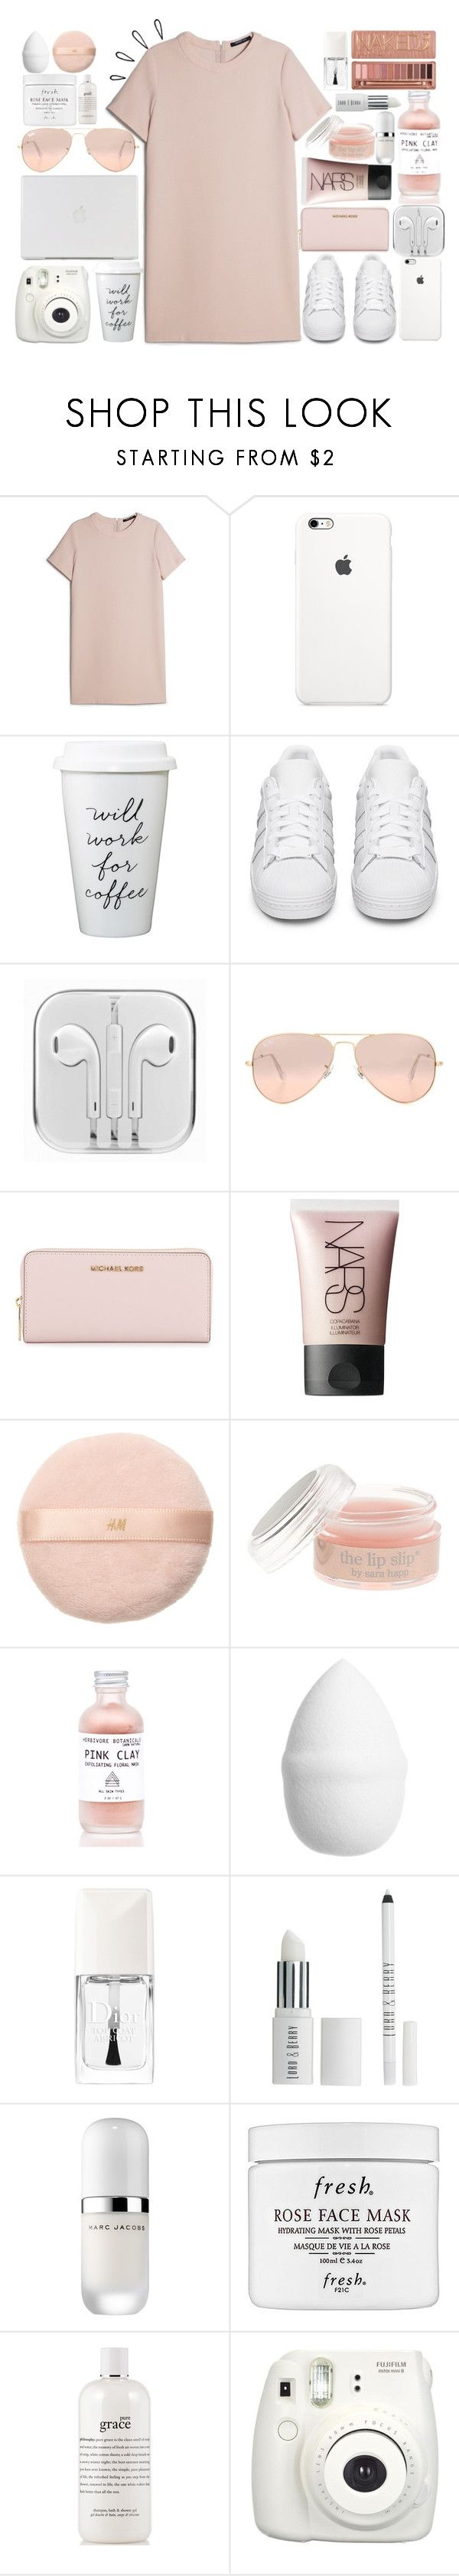 """""""If there's winners and losers, then I'll be the loser"""" by xcuteniallx ❤ liked on Polyvore featuring MANGO, adidas Originals, Ray-Ban, MICHAEL Michael Kors, NARS Cosmetics, H&M, J.Crew, Urban Decay, Christian Dior and Lord & Berry"""